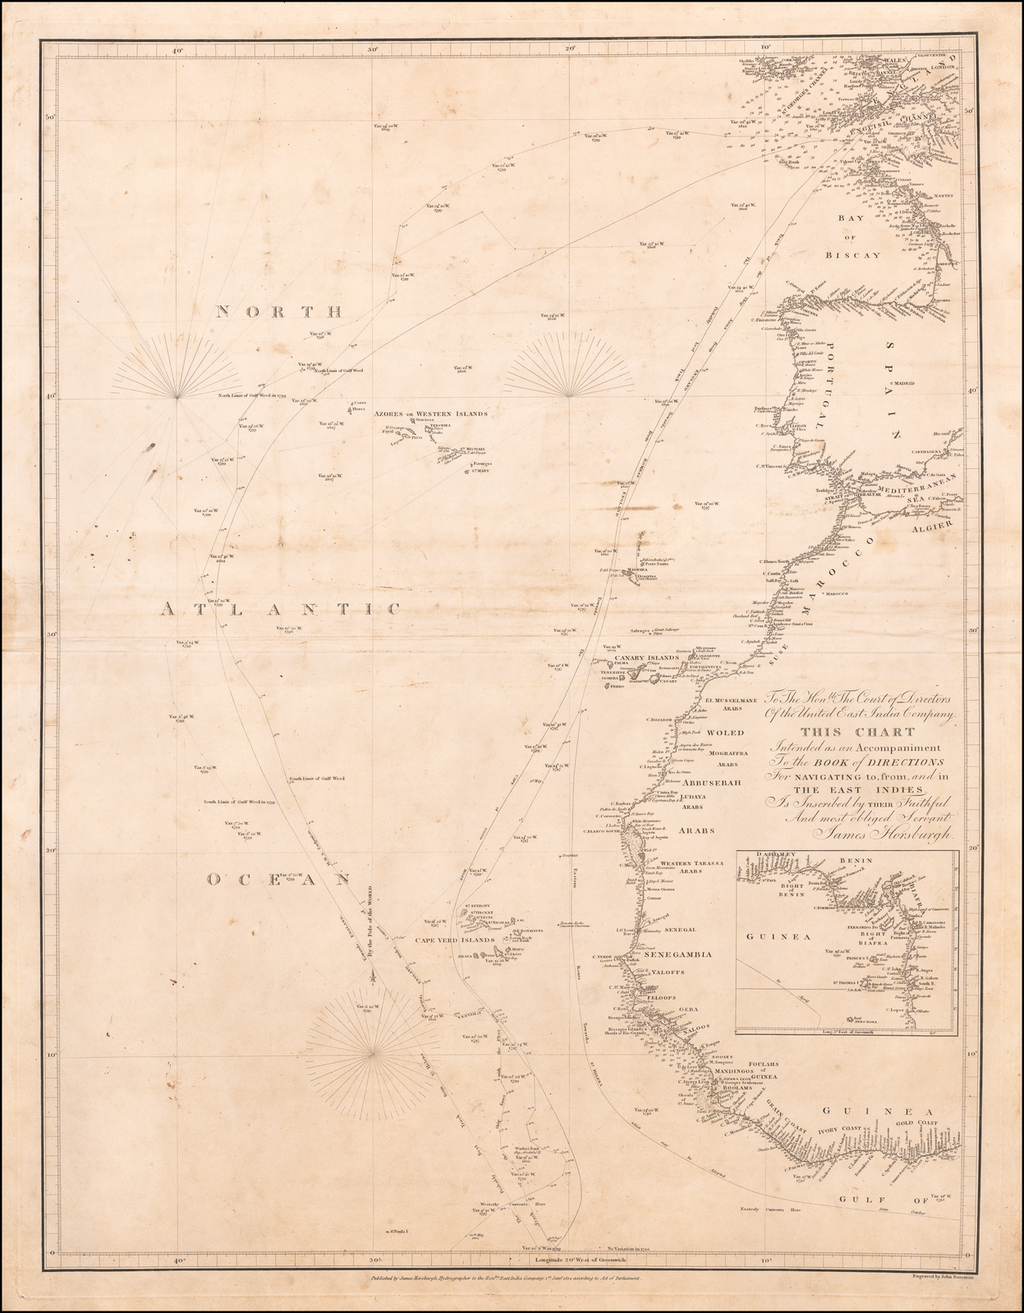 [Atlantic Ocean] To The Hon:ble The Court of Directors of the United East India Company  This Chart  Intended as an Accompaniment to the Book of Directions For Navigating to, from and in the East Indies.  Is Inscribed by Their Faithful and most obliged Servant James Horsburgh . . . By James Horsburgh